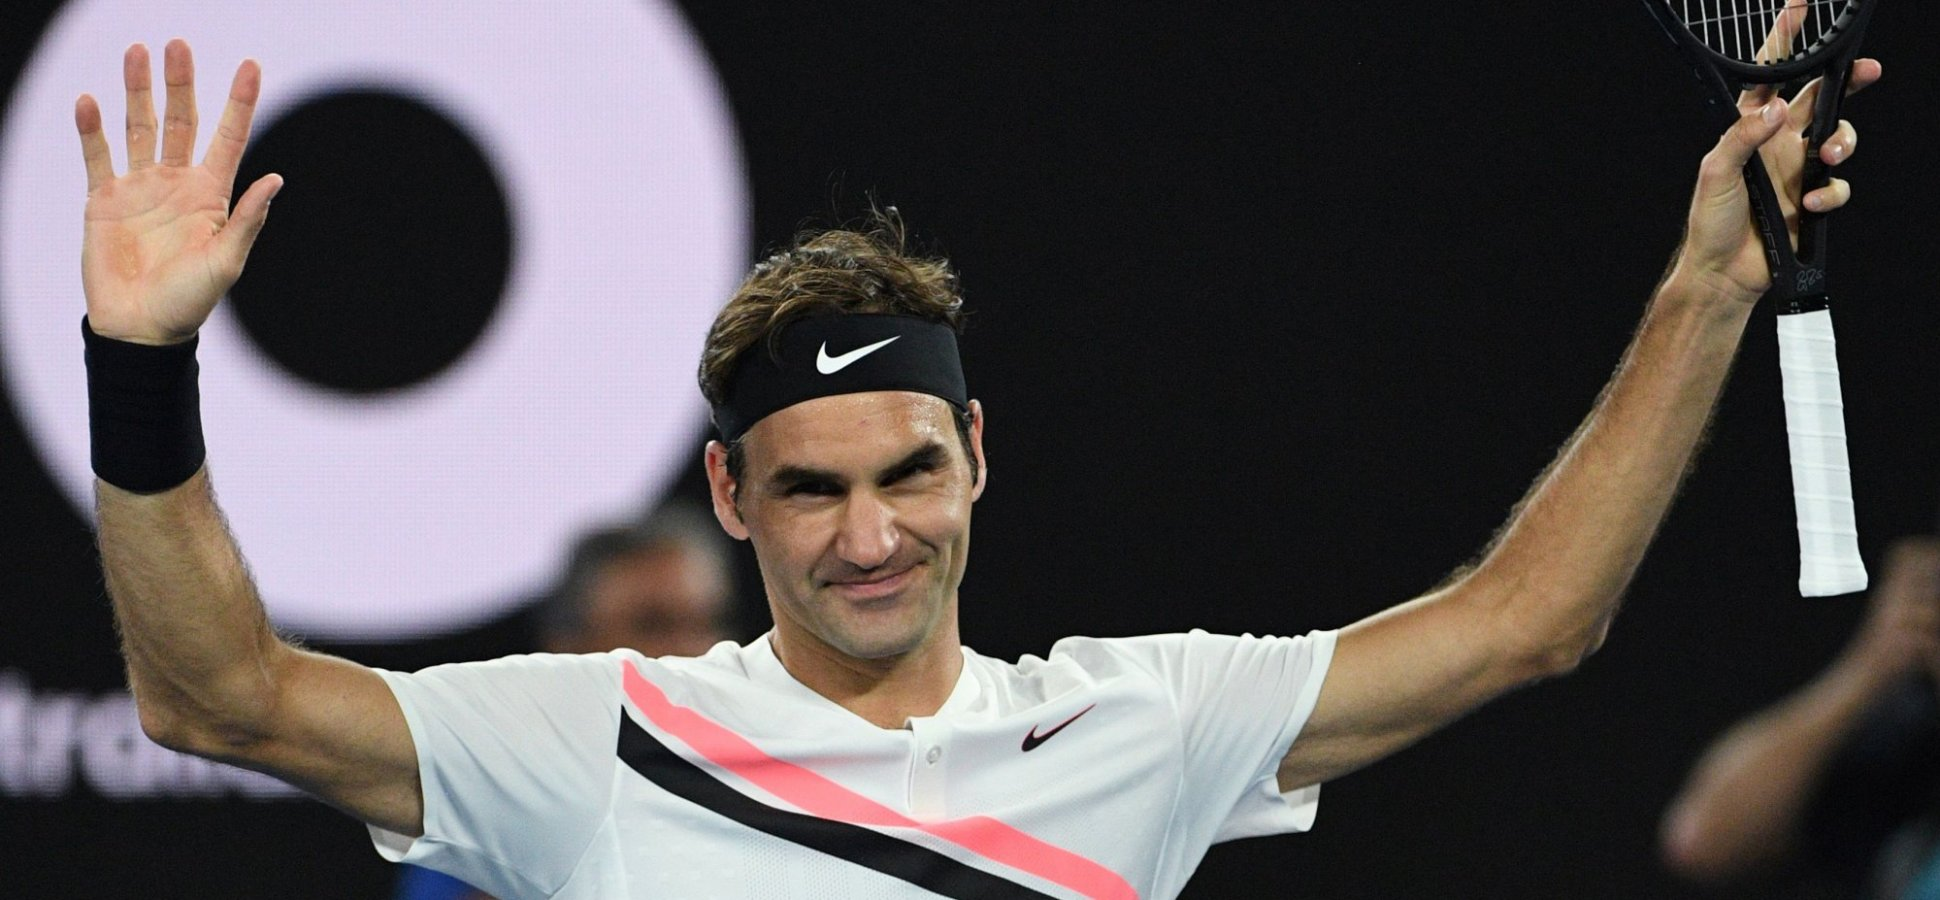 Roger Federer Just Won His 20th Major. Here's the One Thing He Changed to Make it All Possible